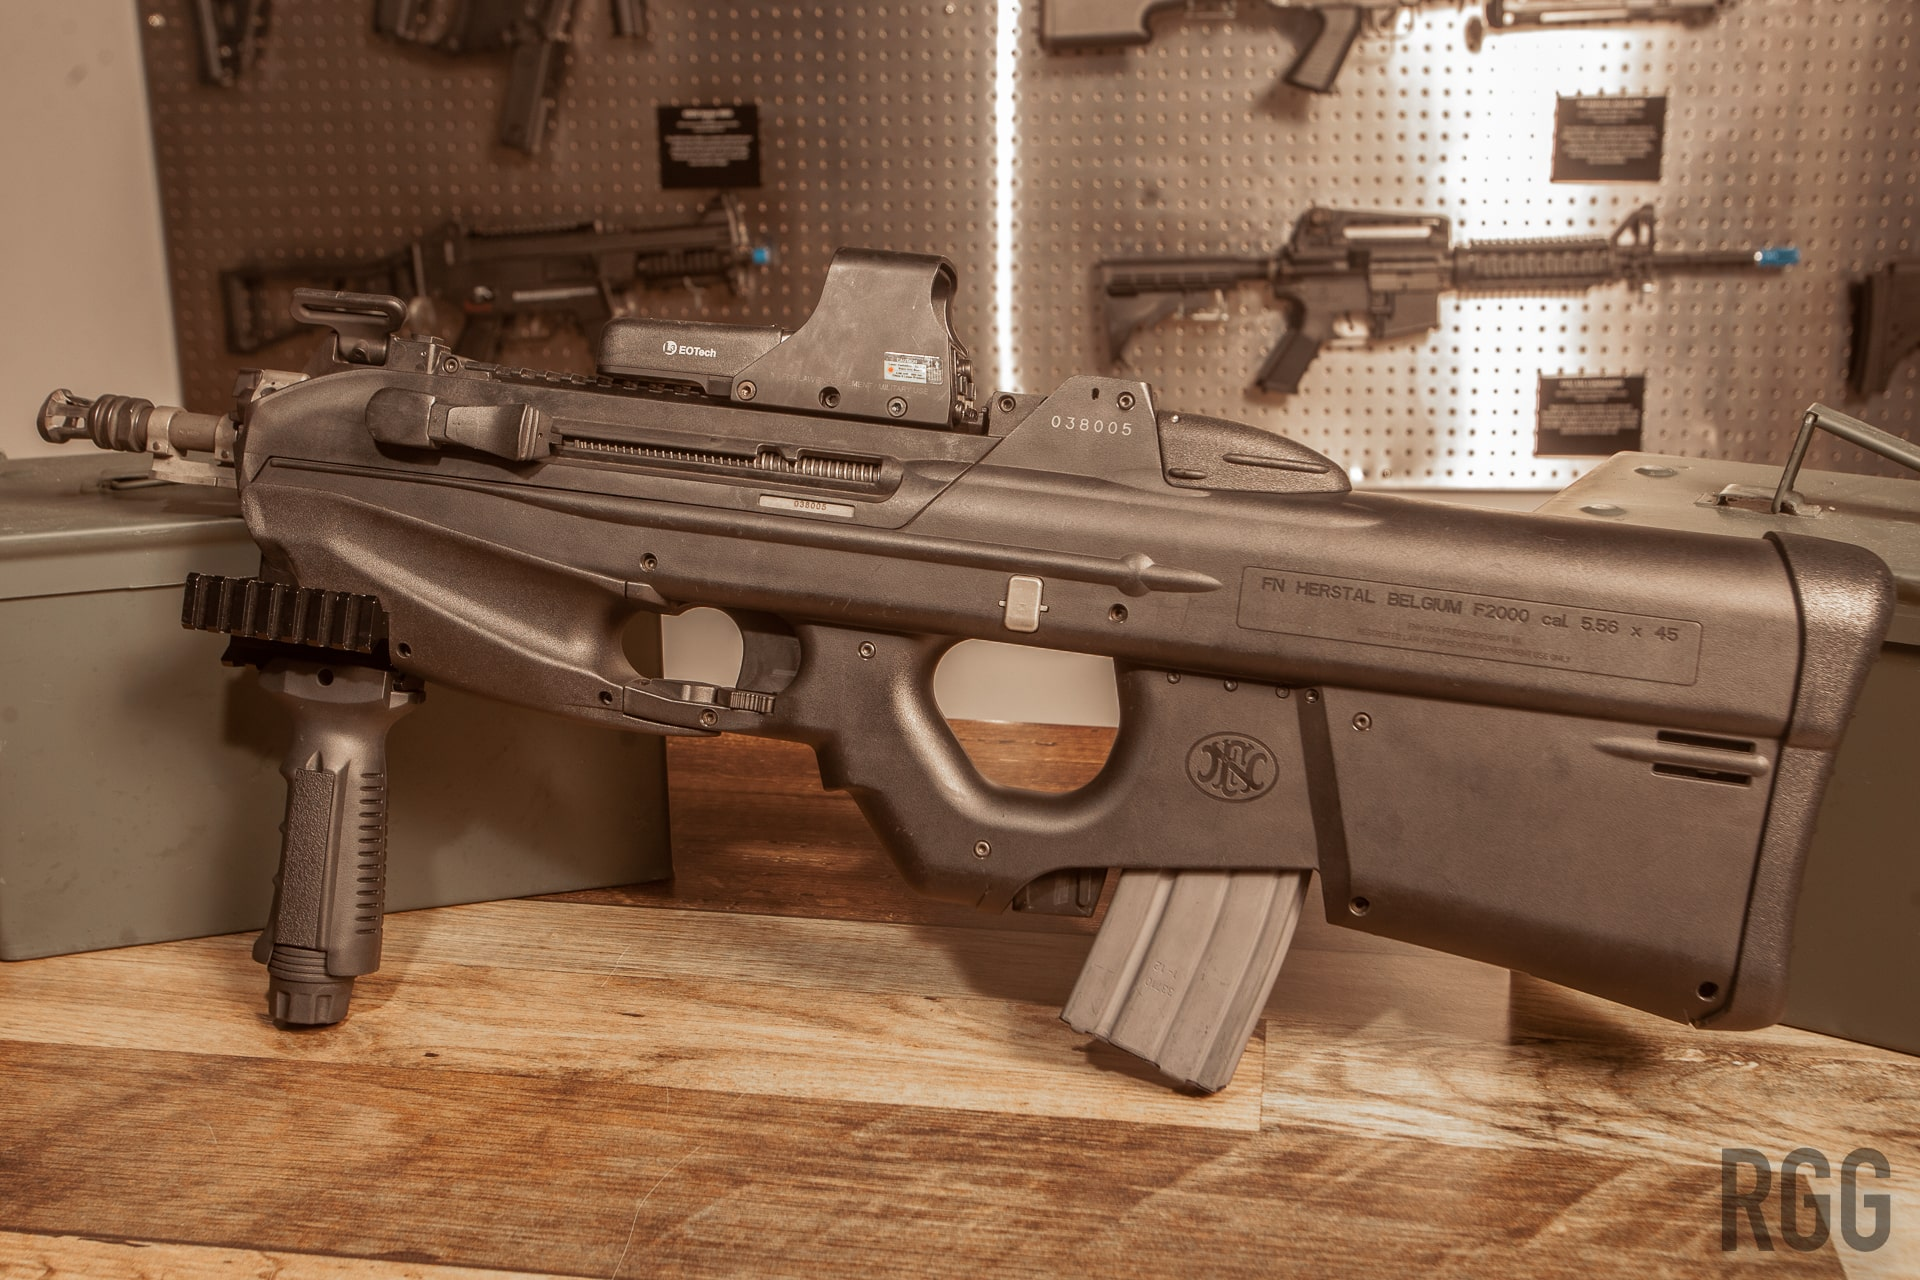 FN F2000 full-auto bullpup rifle.